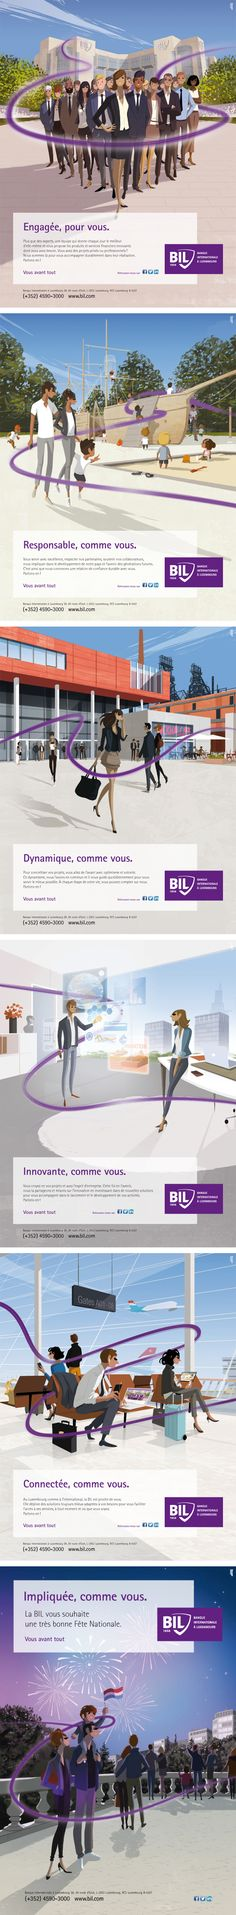 Annonceur : Banque Internationale à Luxembourg Campagne : campagne image 2015 Agence : Concept Factory